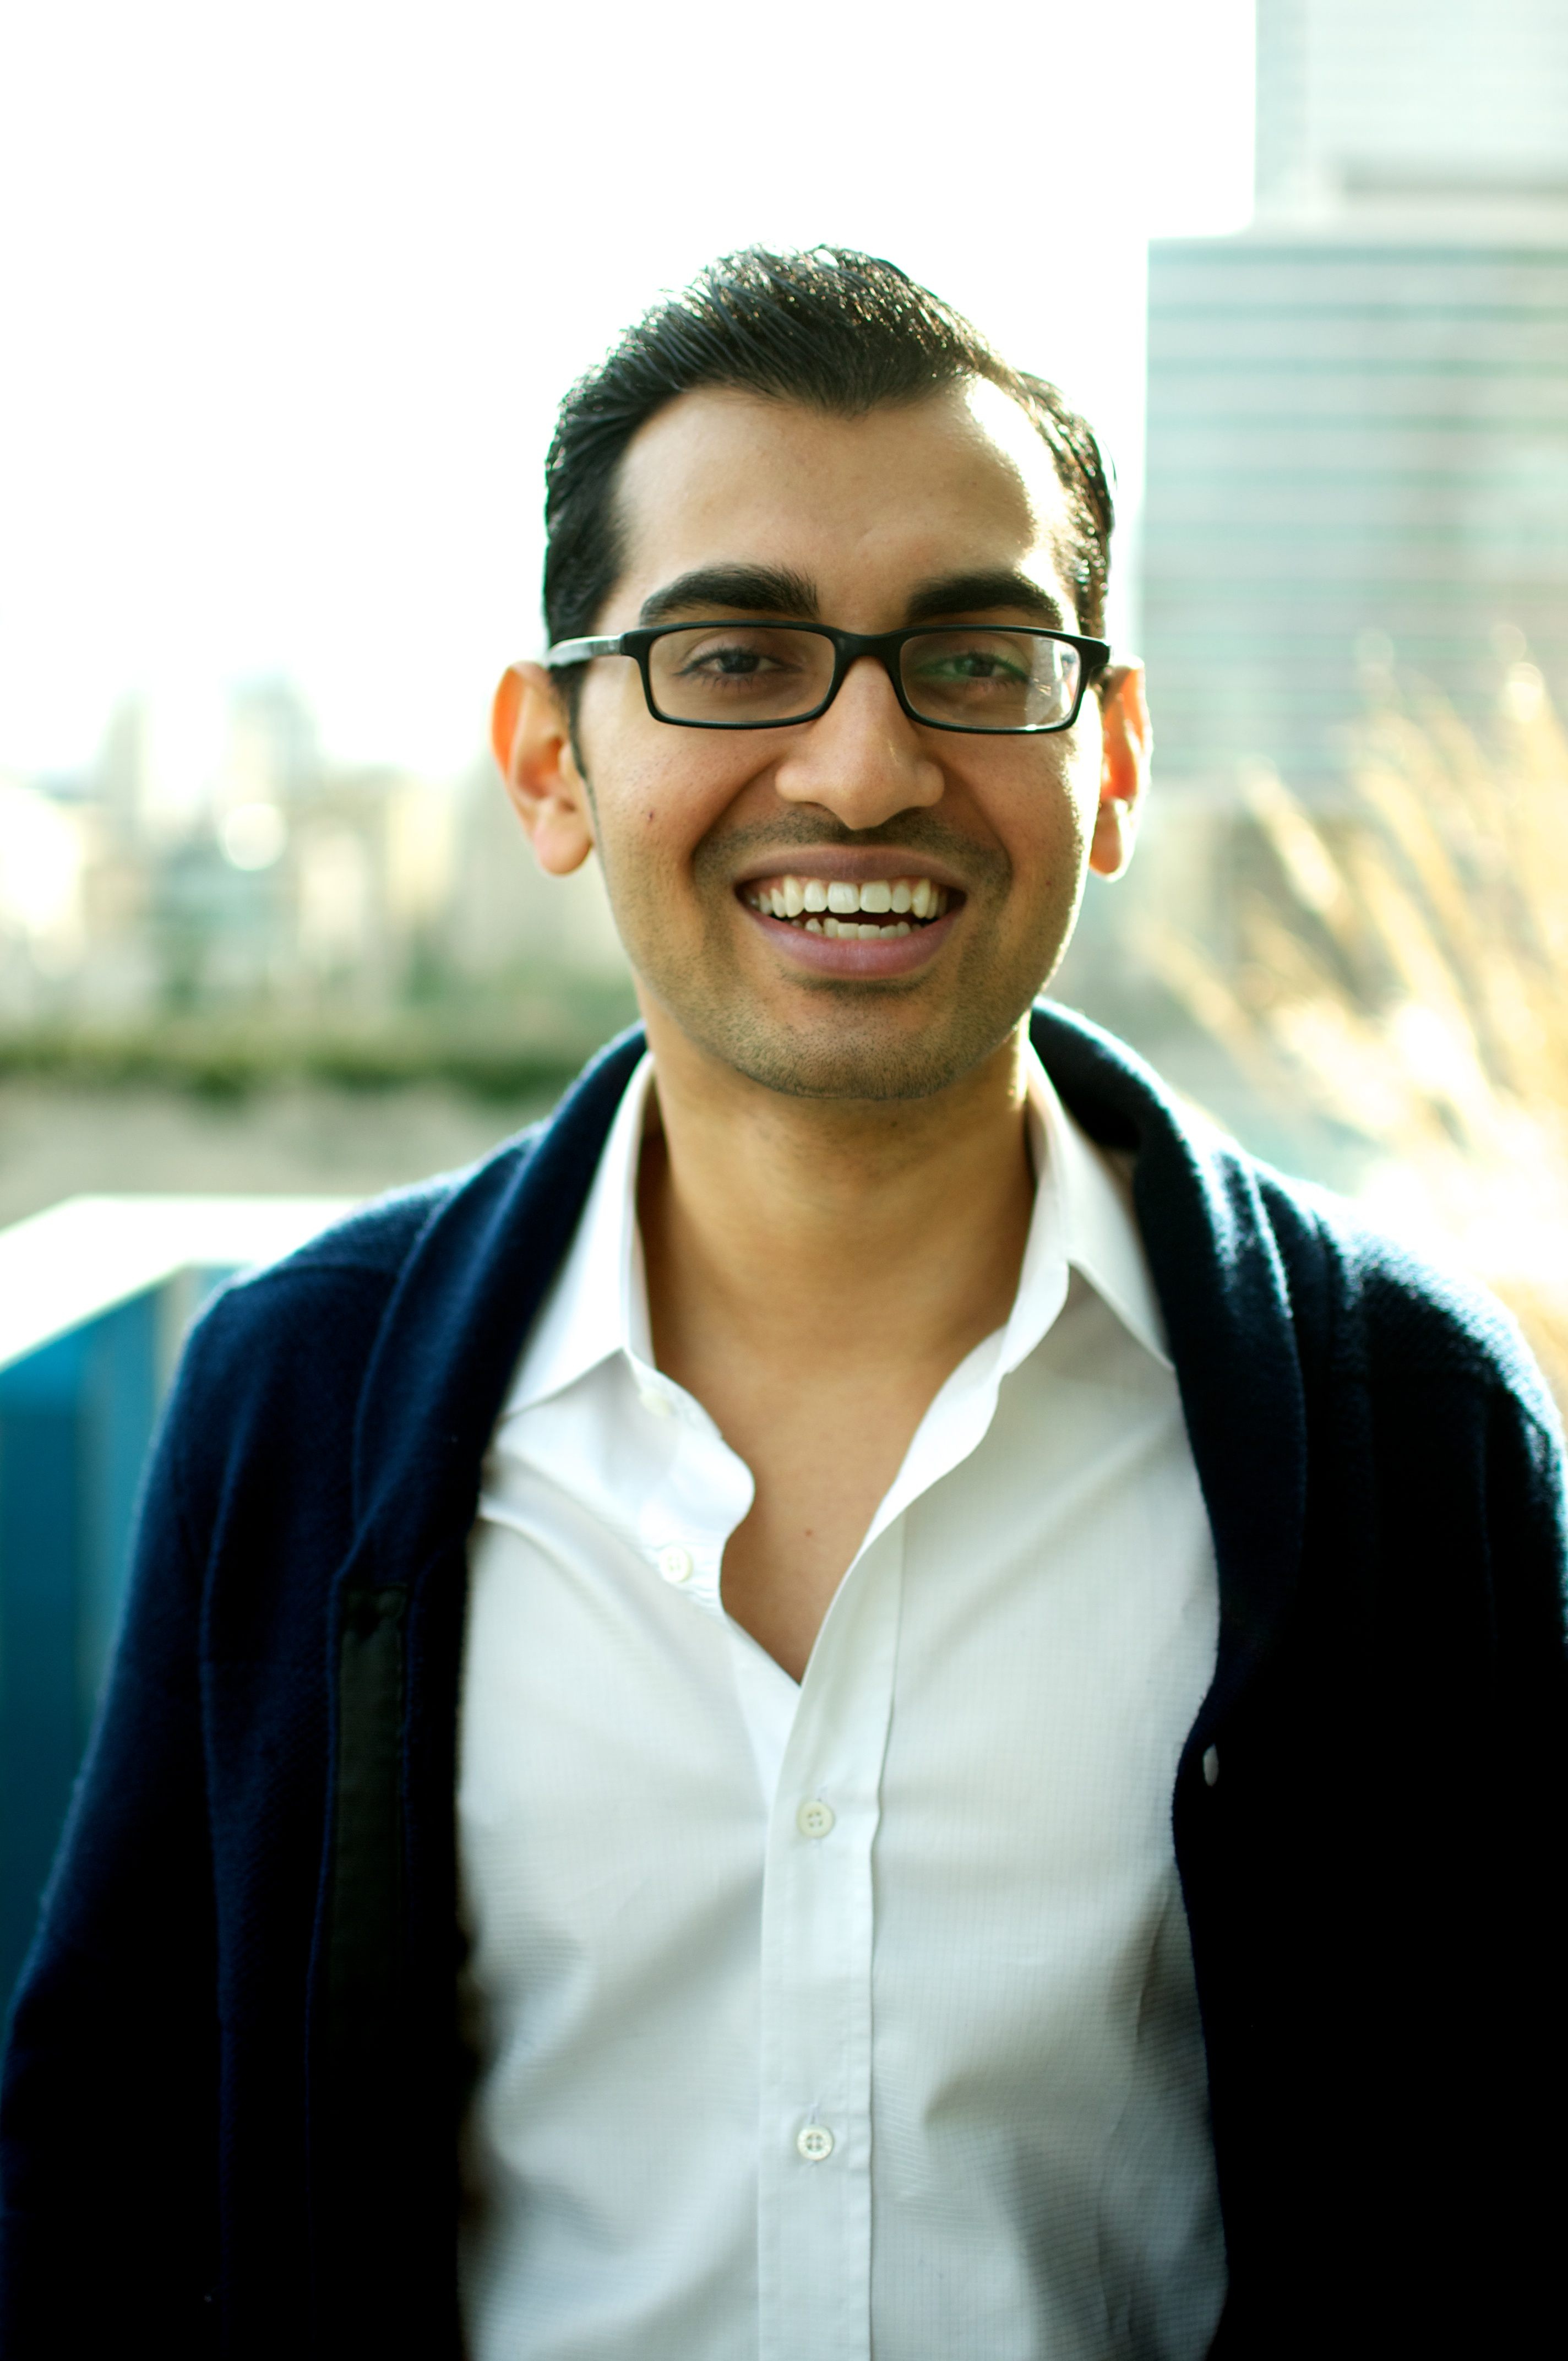 Neil Patel's Guide to Writing Popular Blog Posts